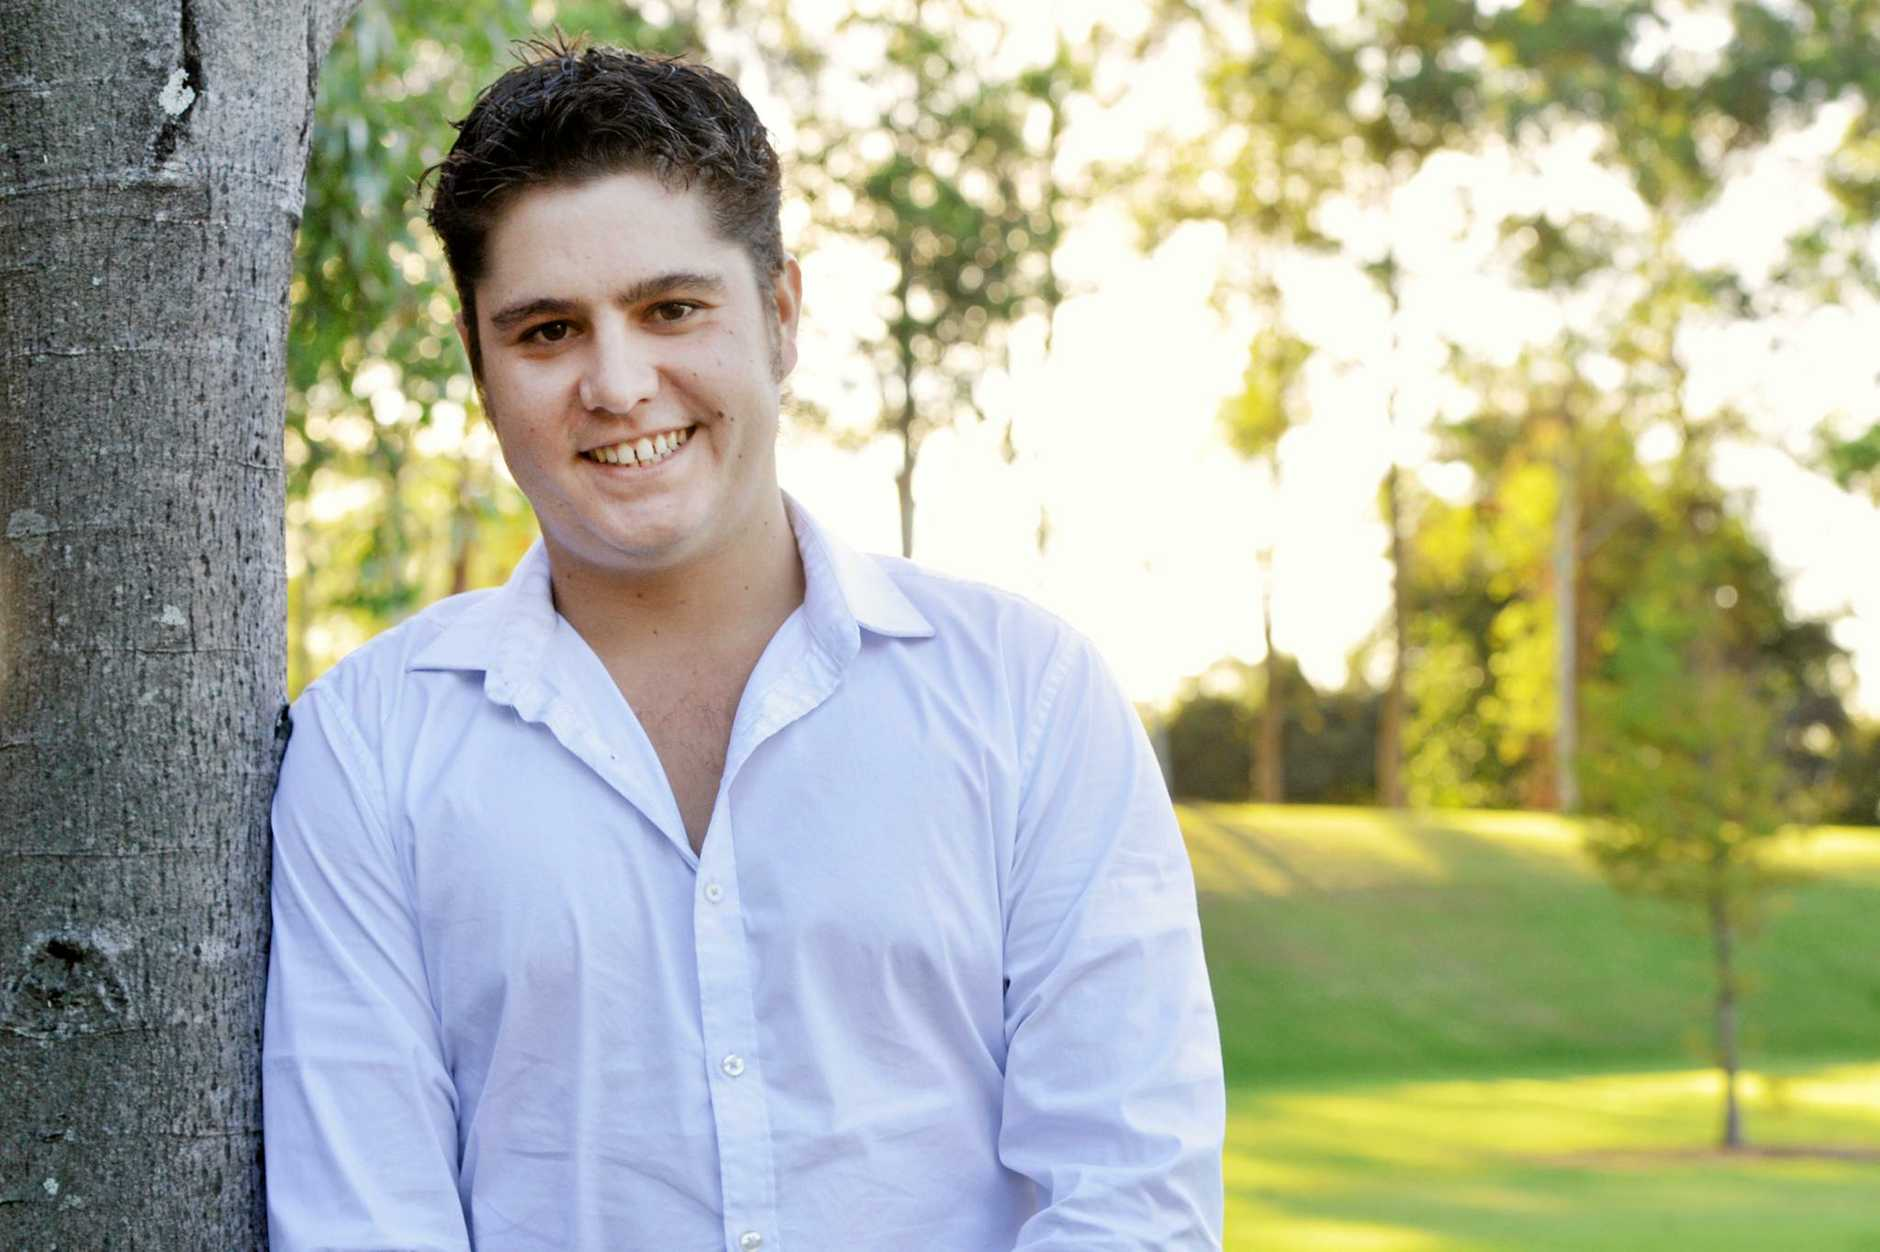 CONTENDER: One Nation candidate for Ipswich West Brad Trussell is tipped by former LNP MP Sean Choat to prevail in Ipswich West.